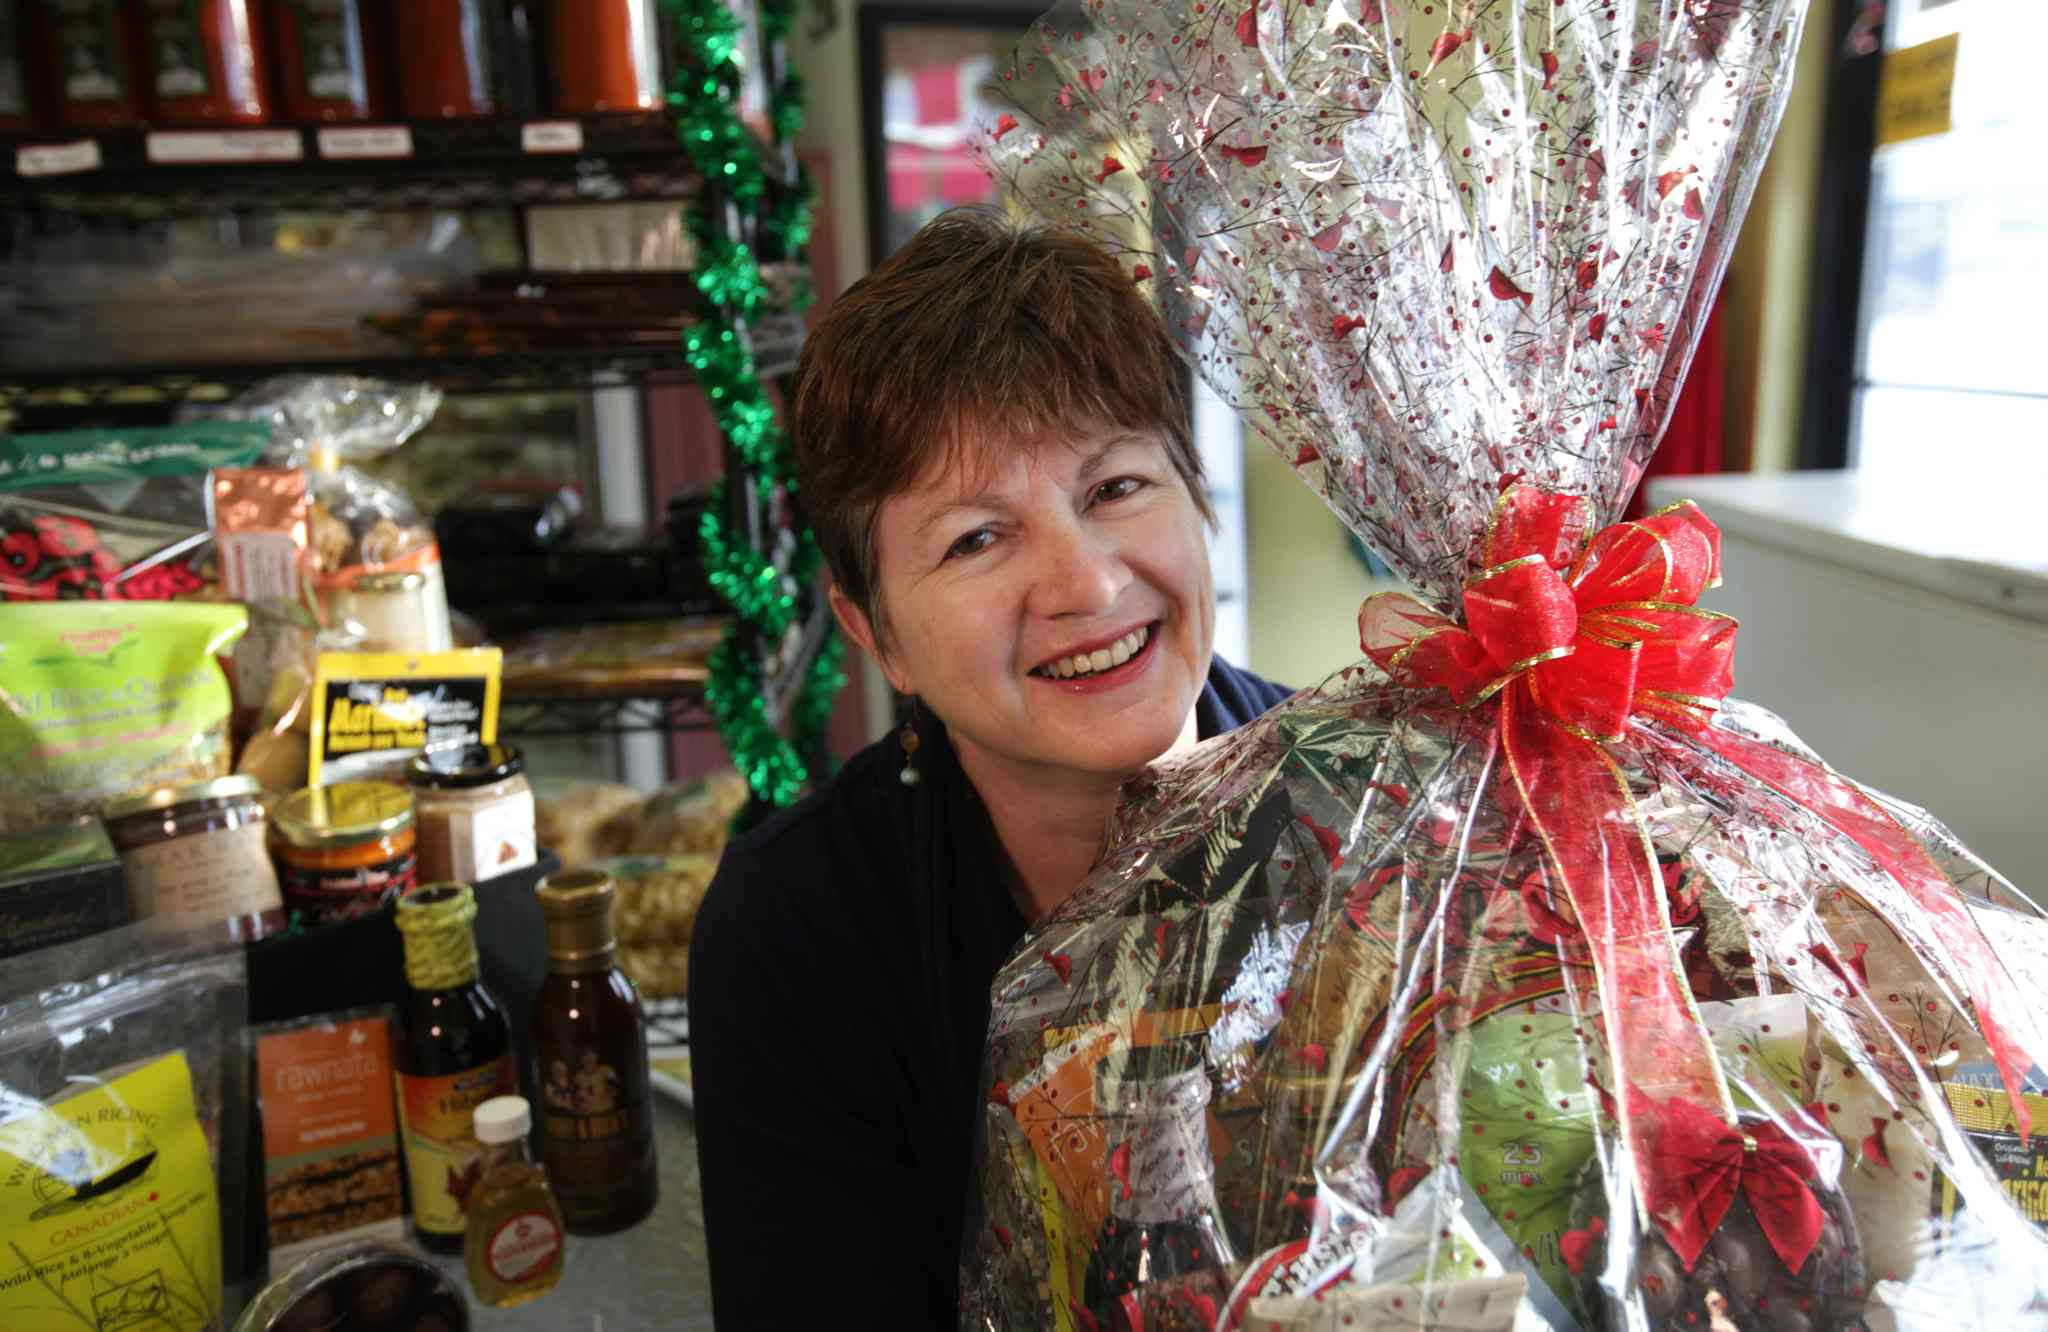 Carla Dayholos assembles made-in-Manitoba gift baskets filled with locally made products through her company, Mulberry Tree.